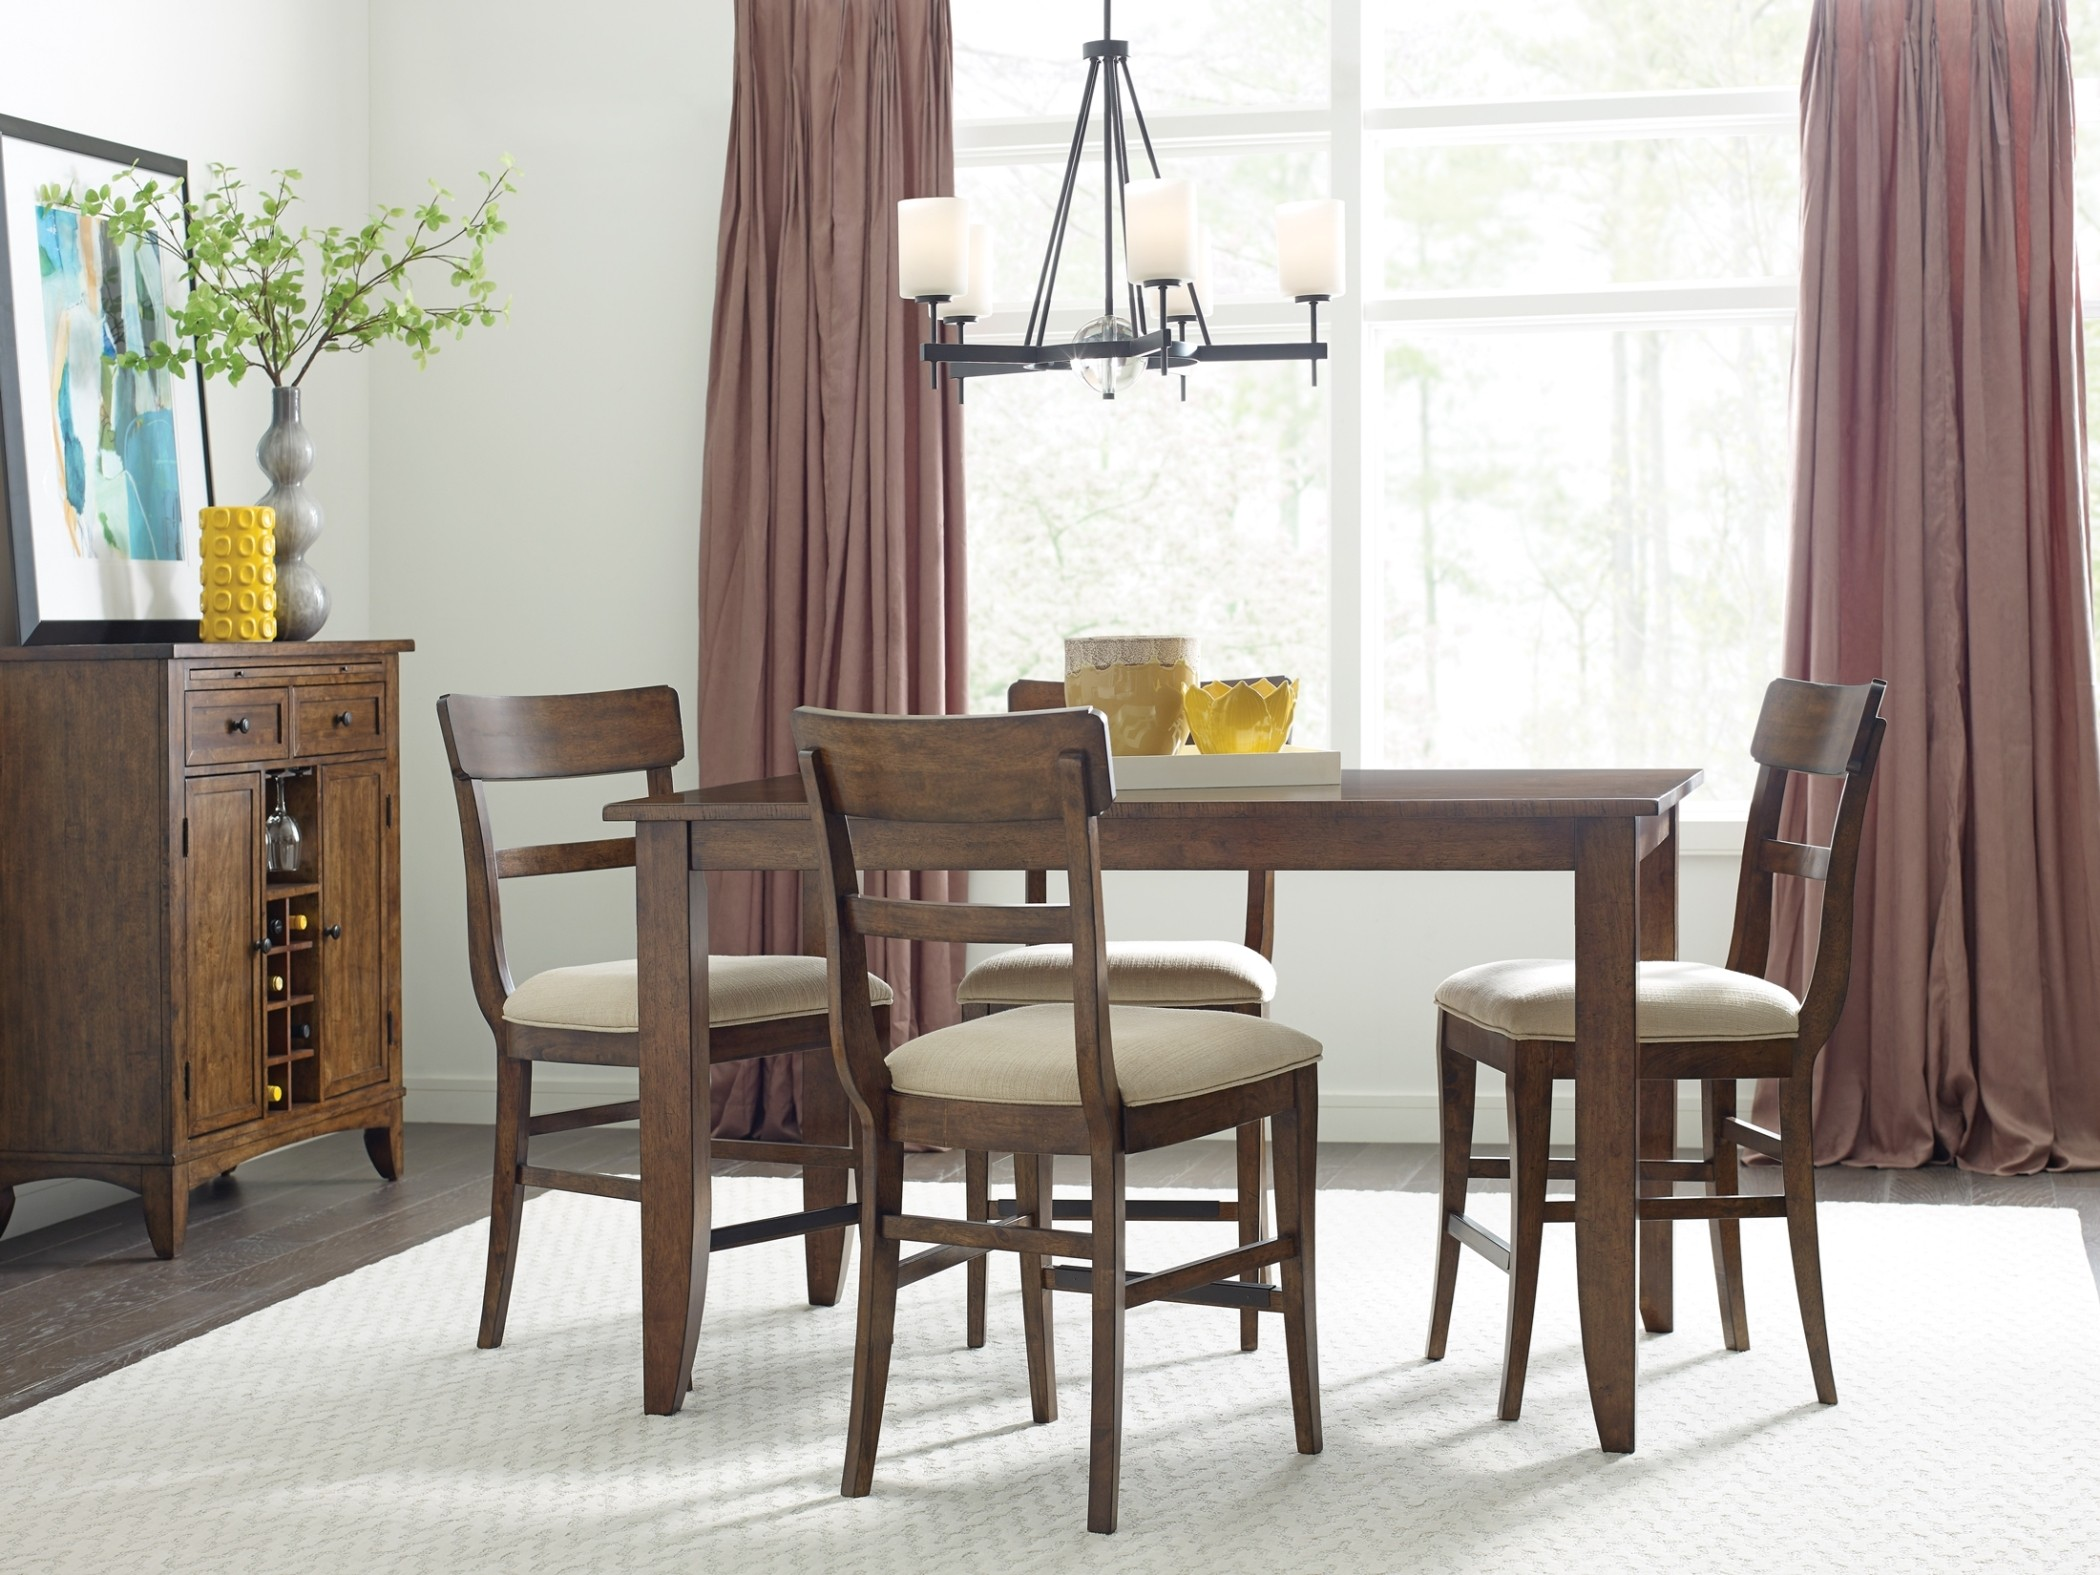 The Nook Maple 60 Counter Height Dining Room Set From Kincaid Furniture